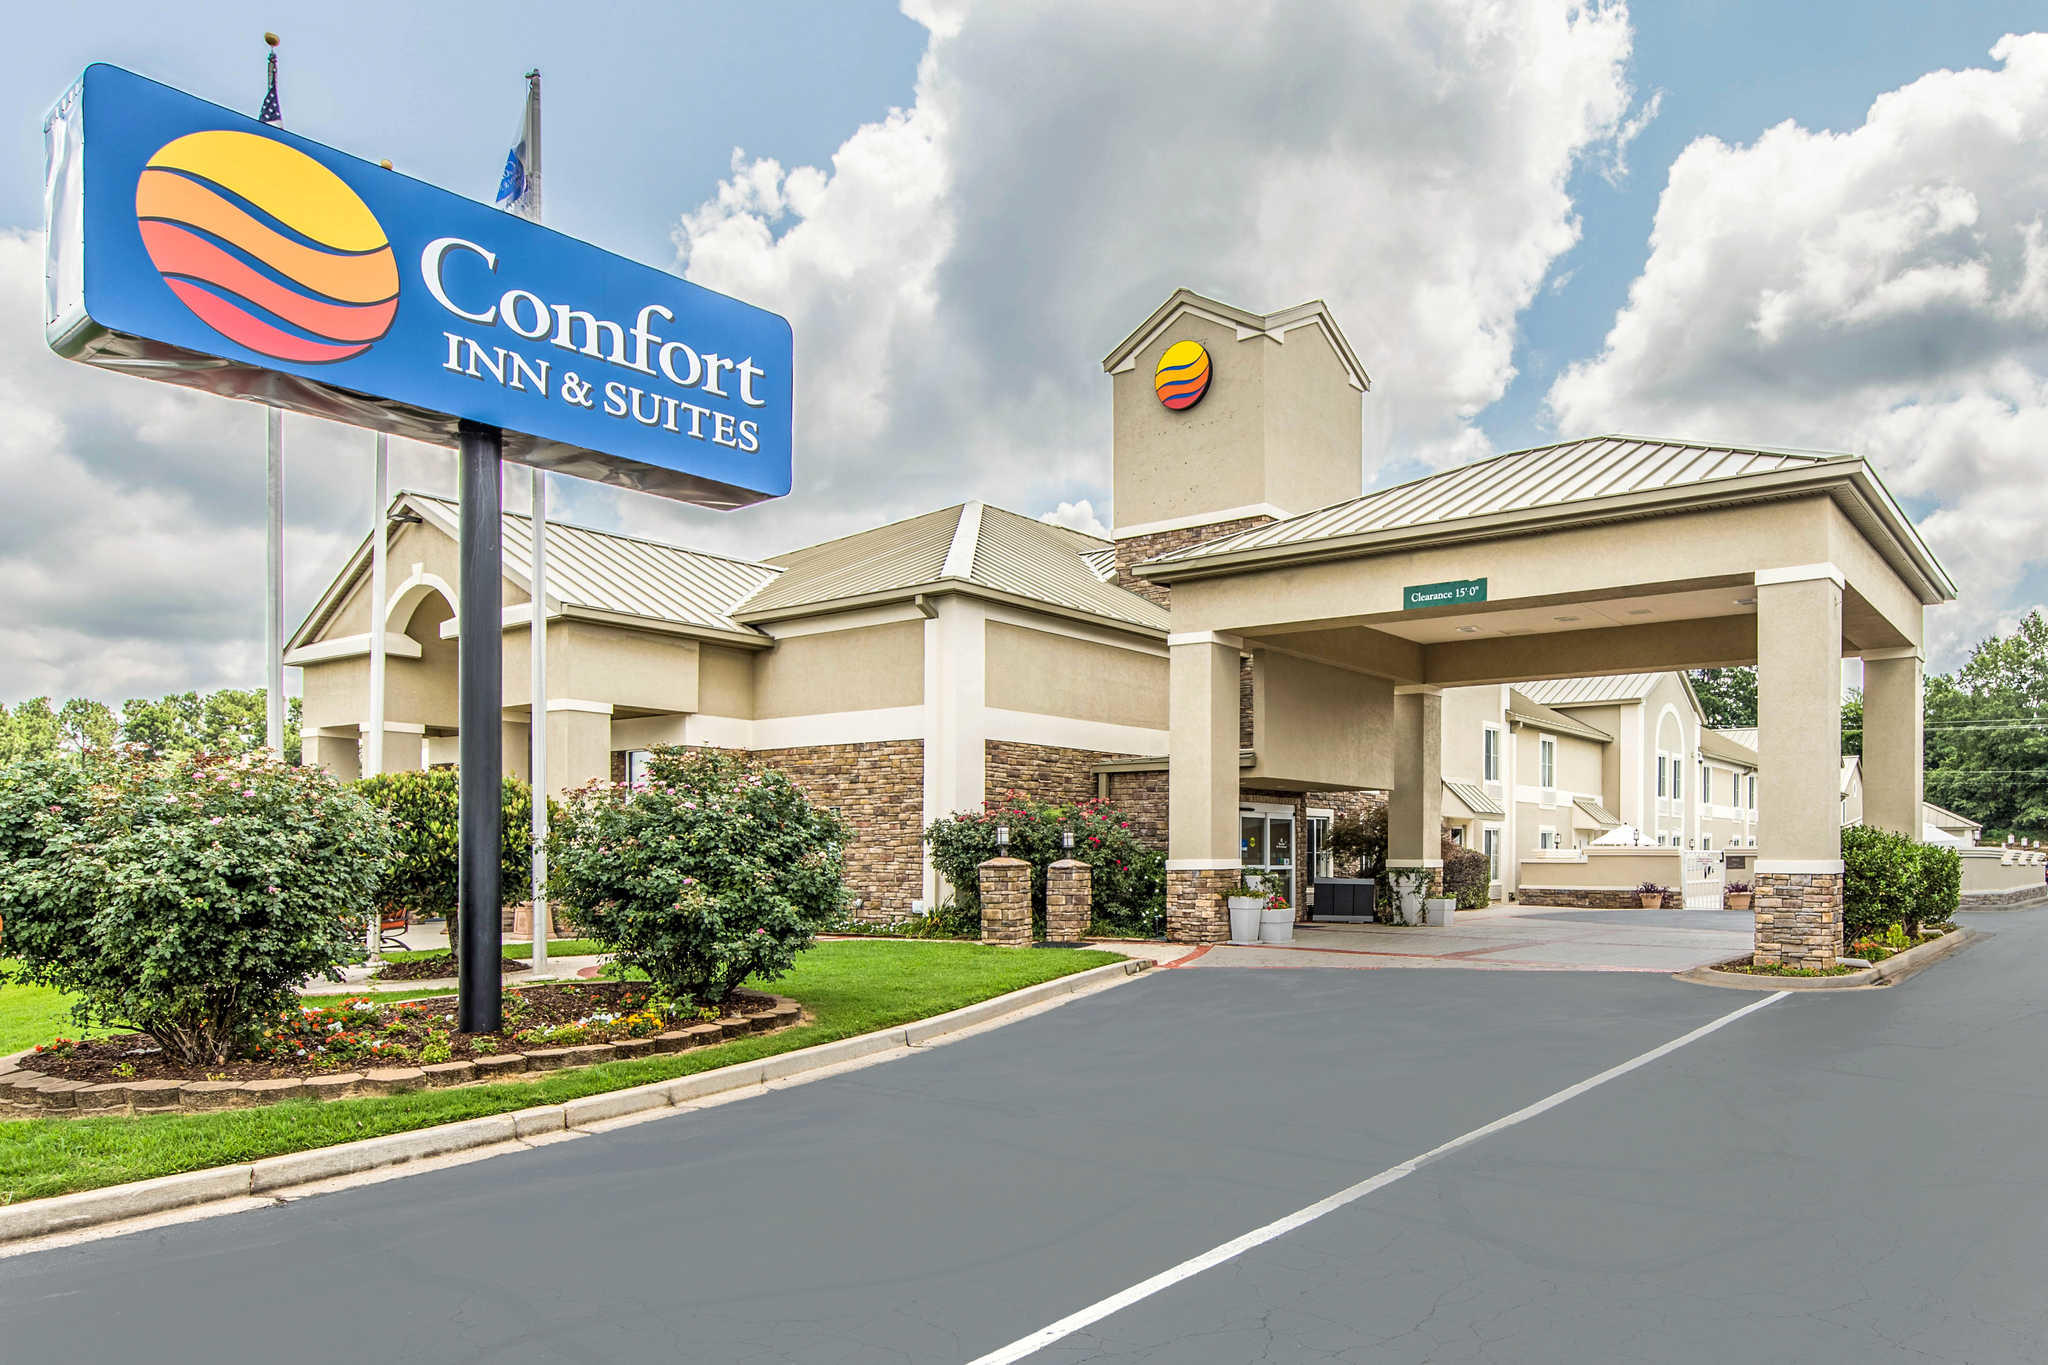 Comfort inn suites in greenwood sc 29649 for Comfort inn suites pillows